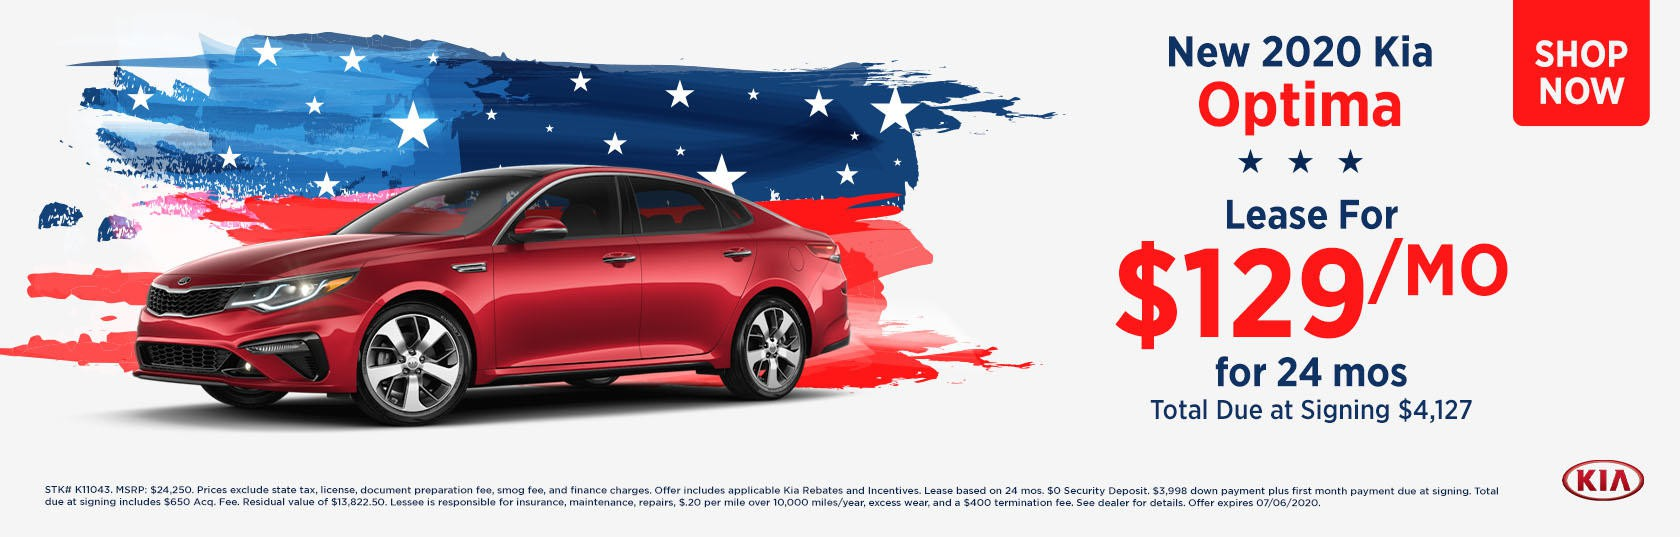 Optima 4th July Special